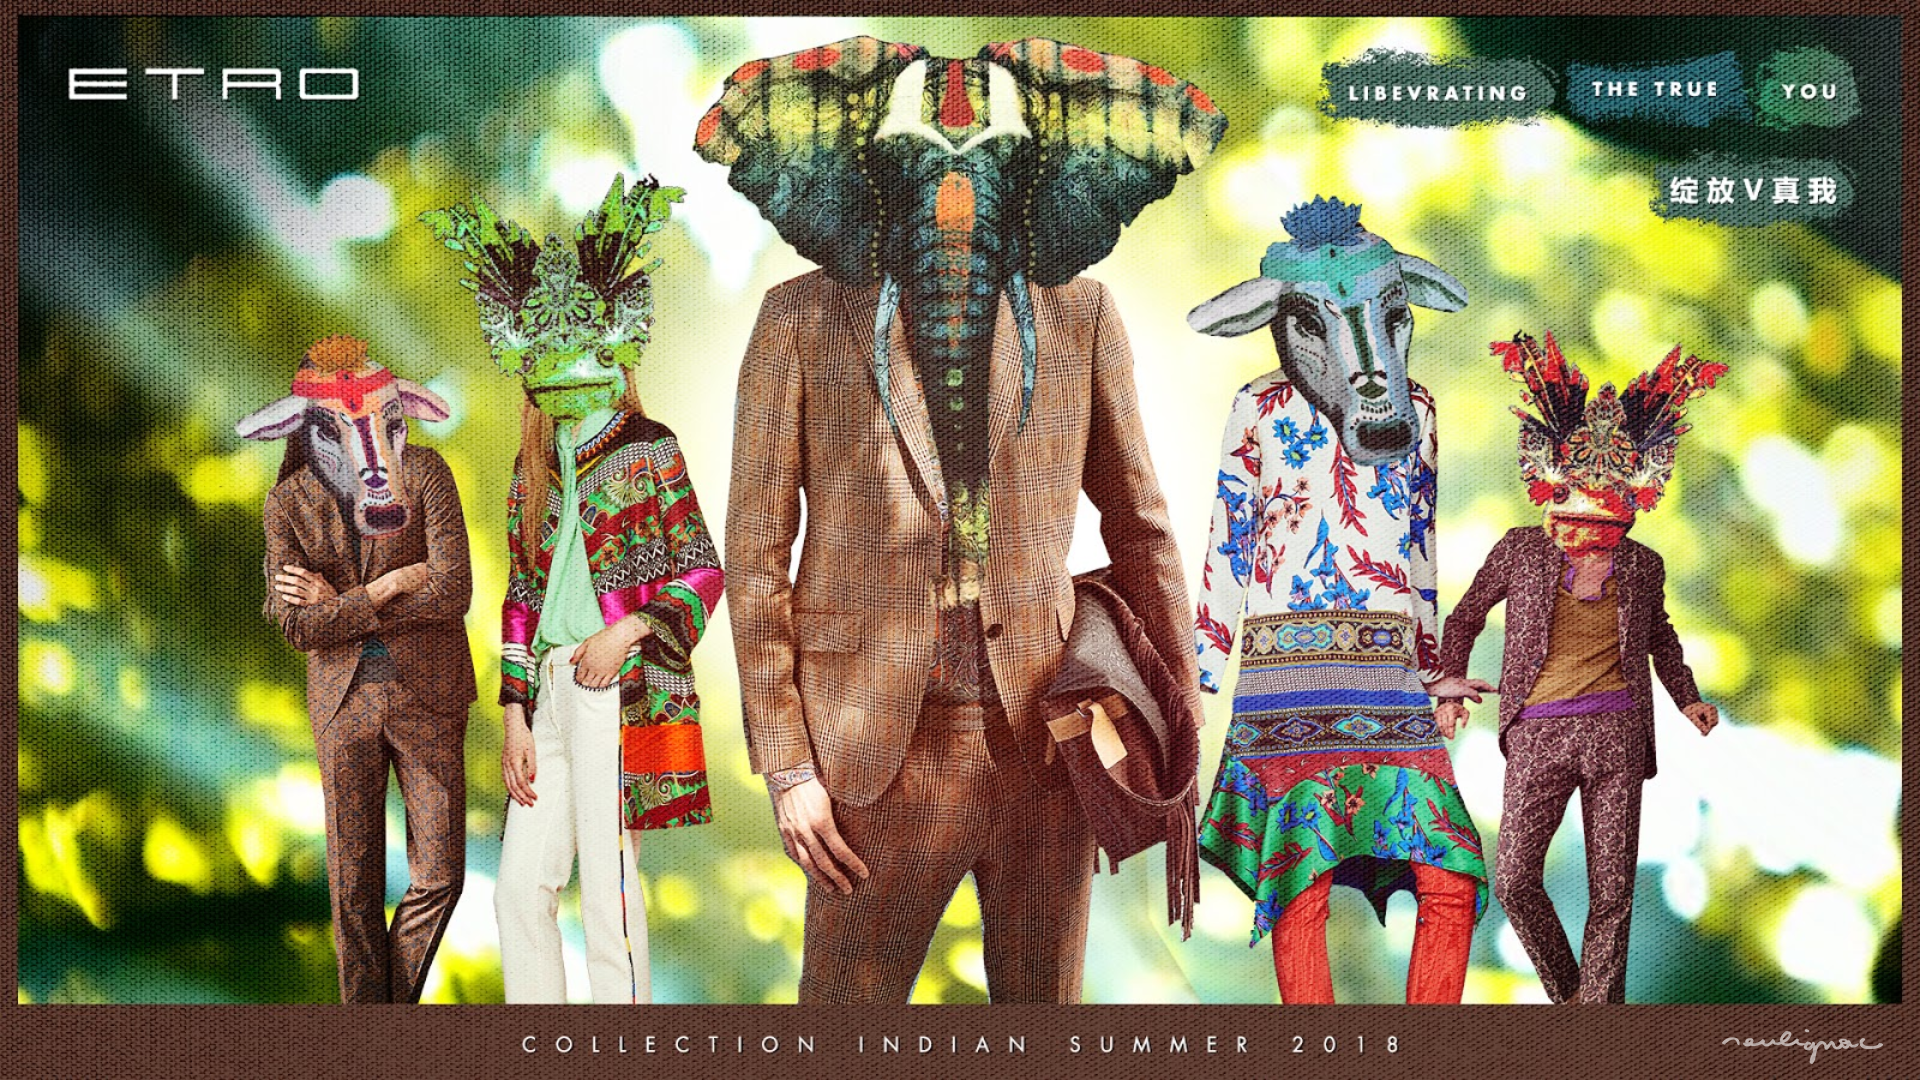 Etro China - Digital Summer Campaign, Key visual mockup - Francois Soulignac - Creative & Art Direction - Labbrand Madjor Shanghai, China